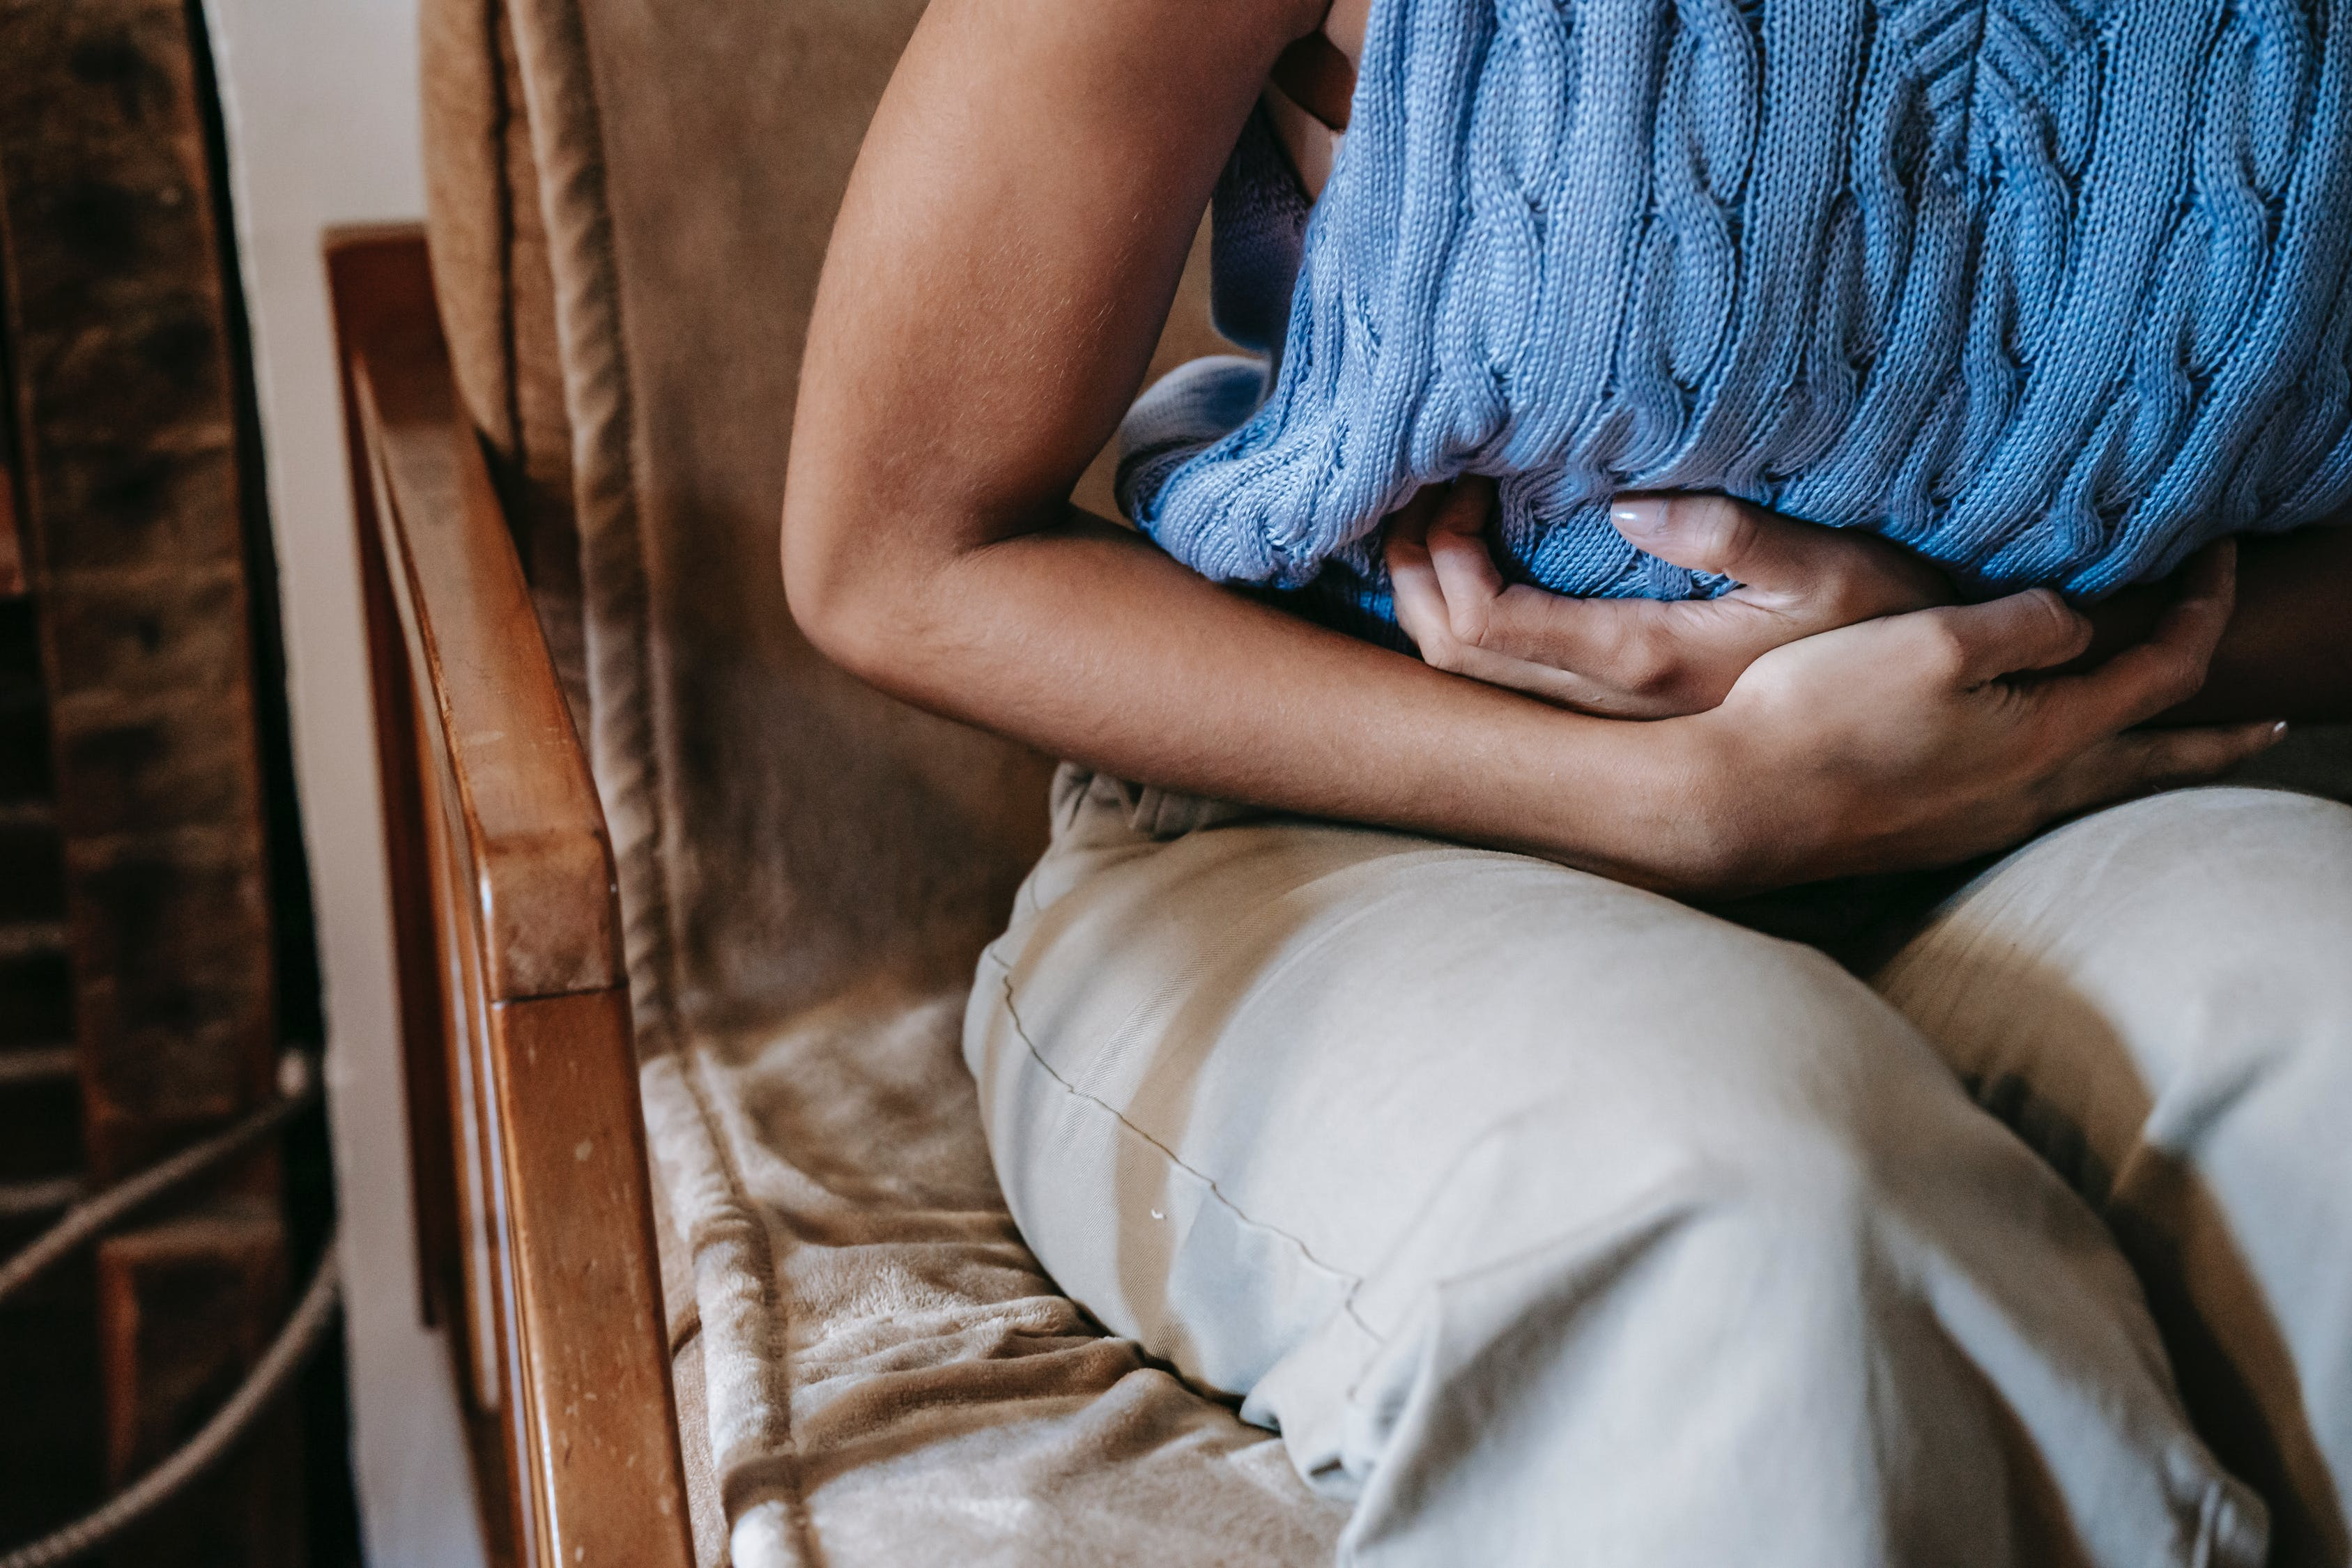 Crop unrecognizable female touching belly while having acute pain in stomach sitting on couch